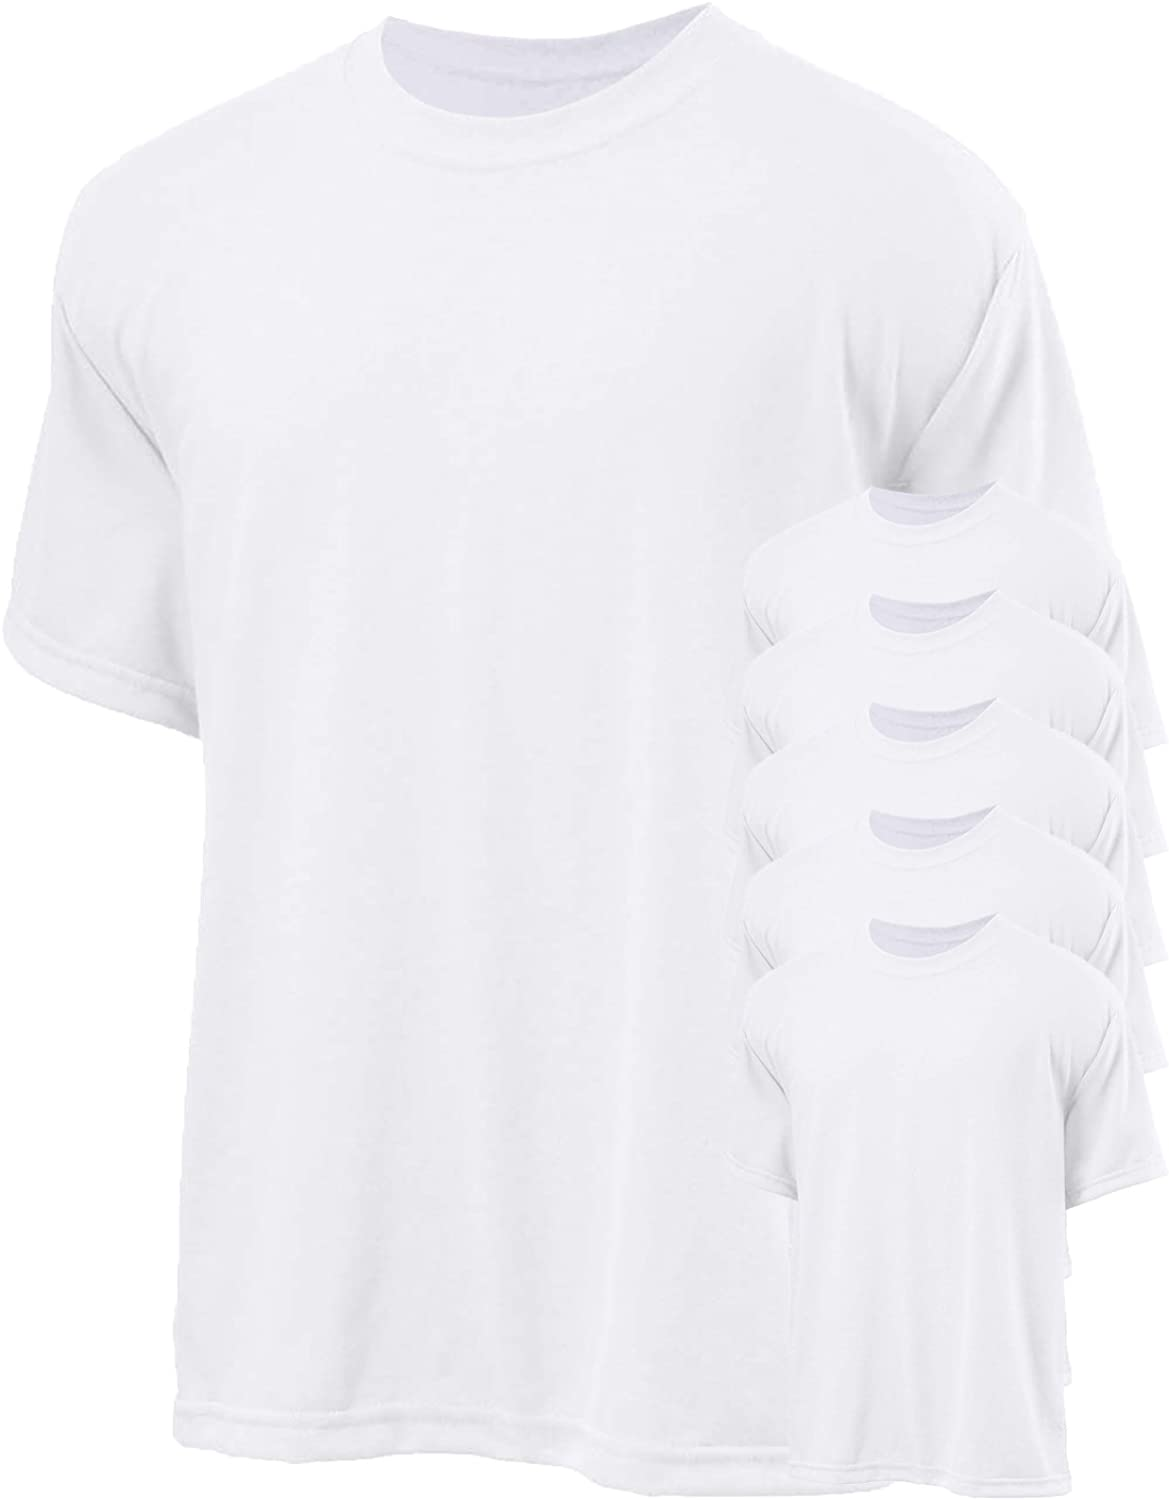 Jerzees 5.3 oz 1 Polyester Crew T-Shirt Pack of 6 White Small.